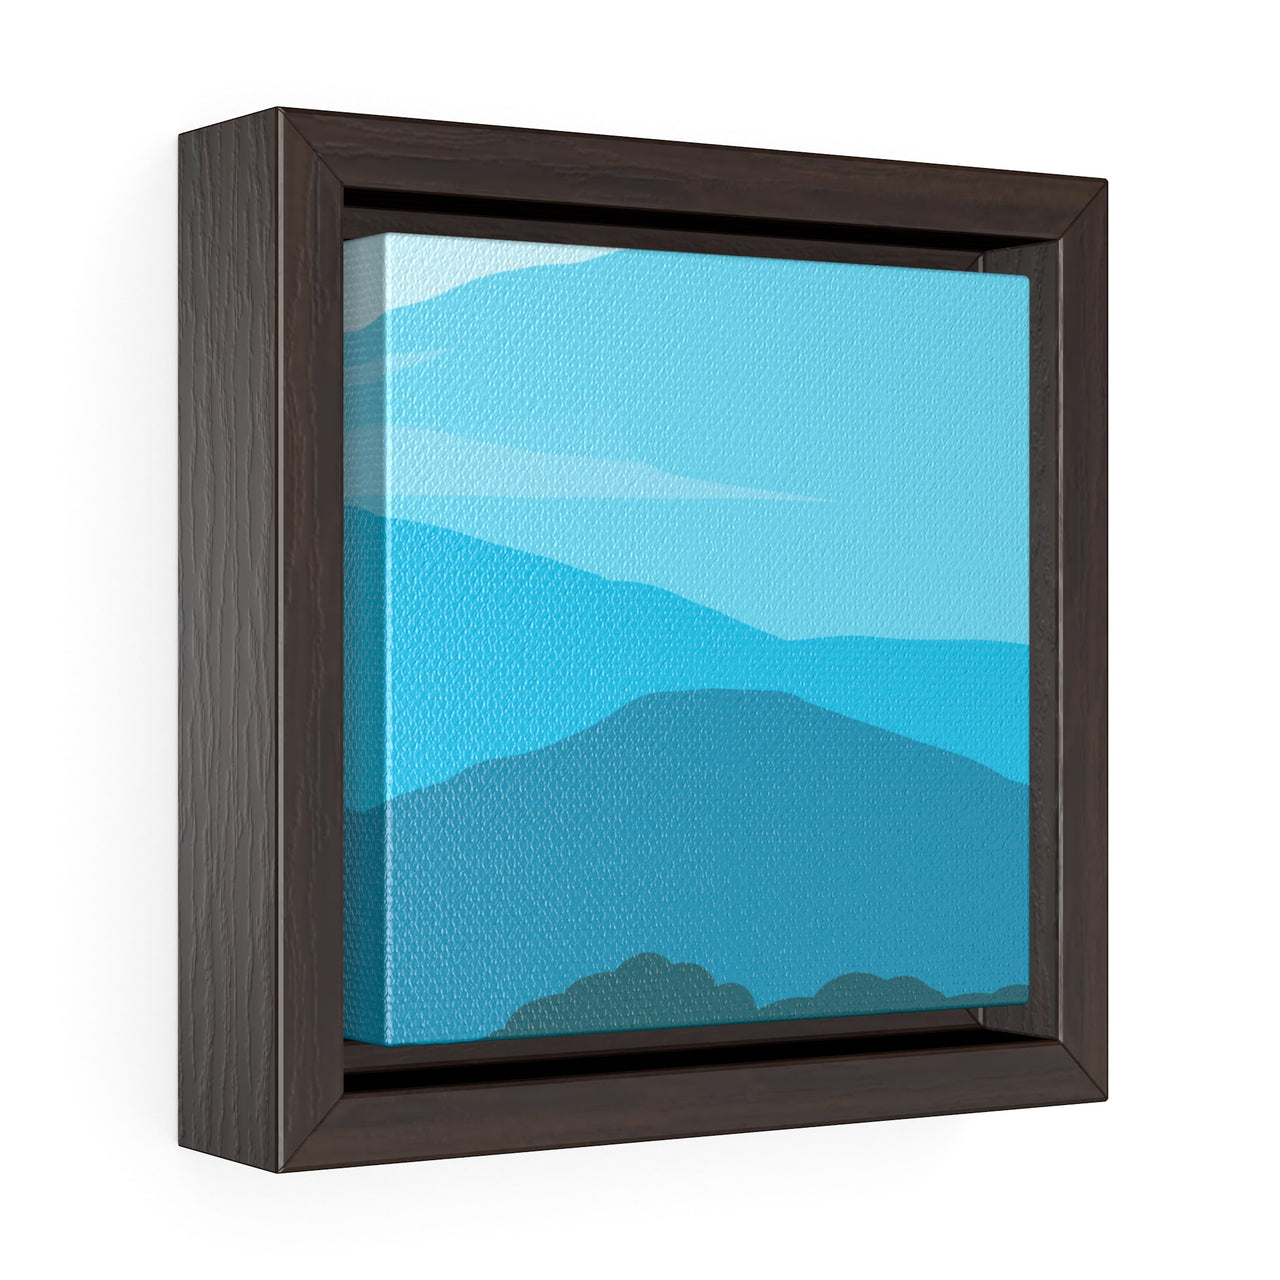 Canvas Wall Print - Blue Ridge Mountains - Square Framed Premium Gallery Wrap Canvas - Falling Leaf Card Co.